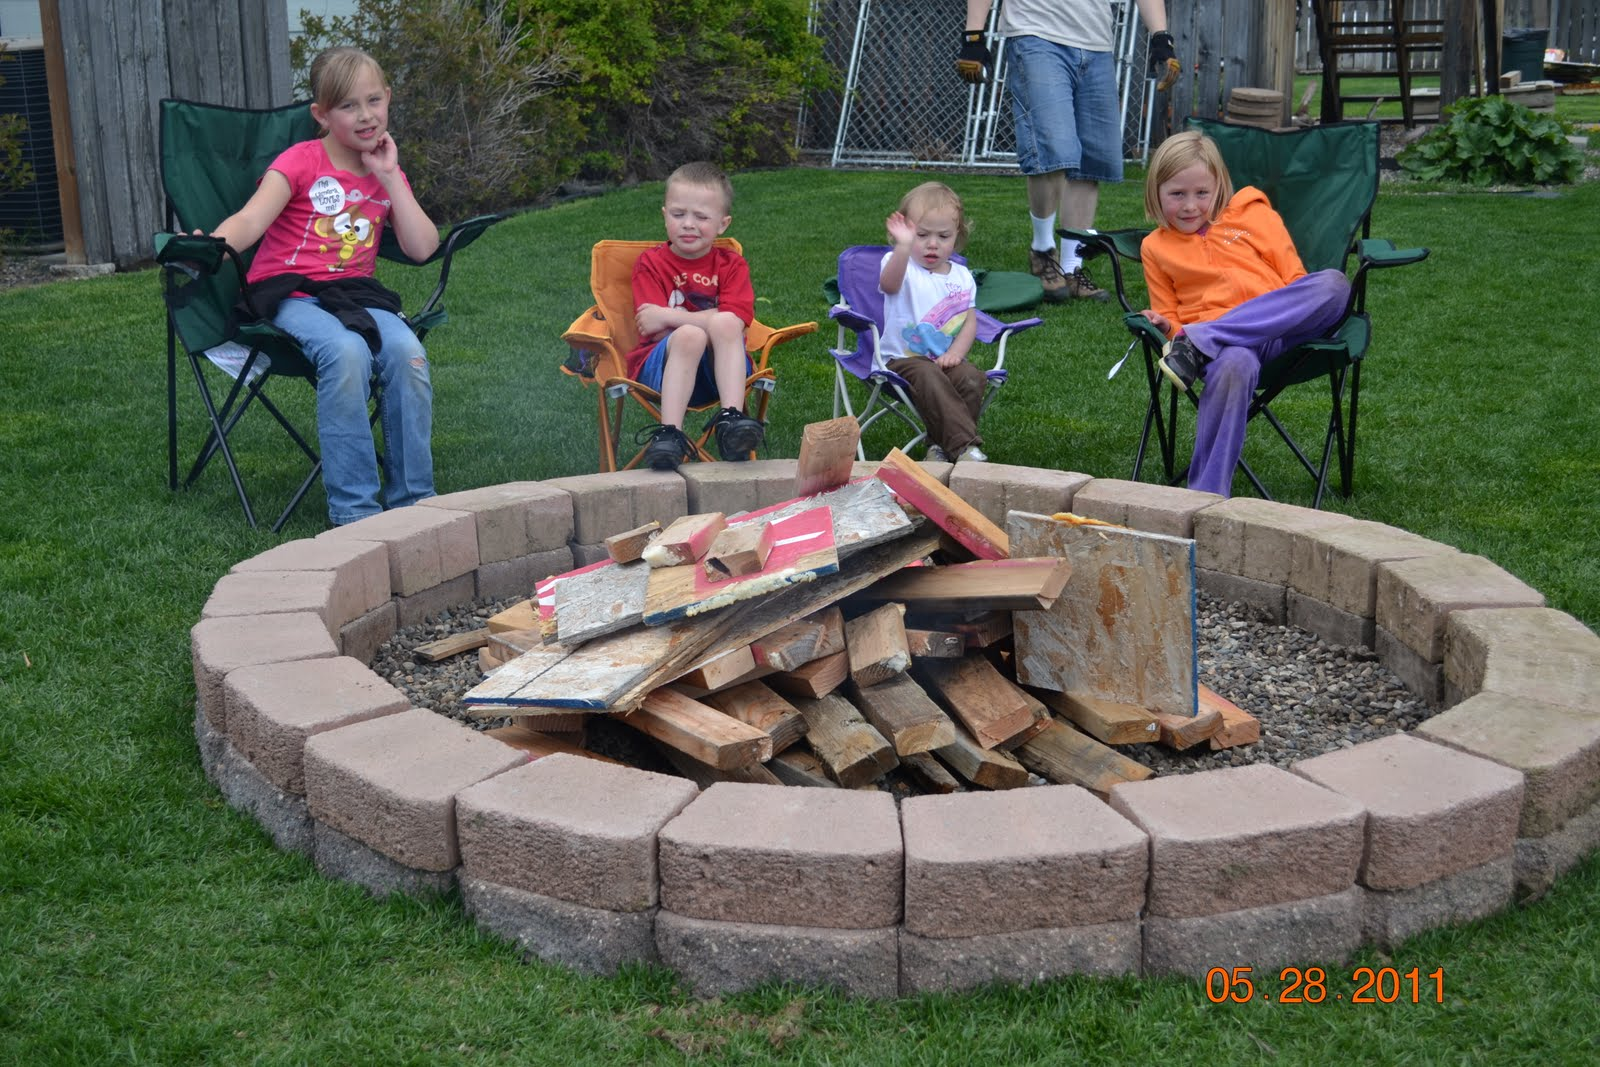 Backyard Fire Pit Plans : backyard fire pit with wood backyard fire pits diy so